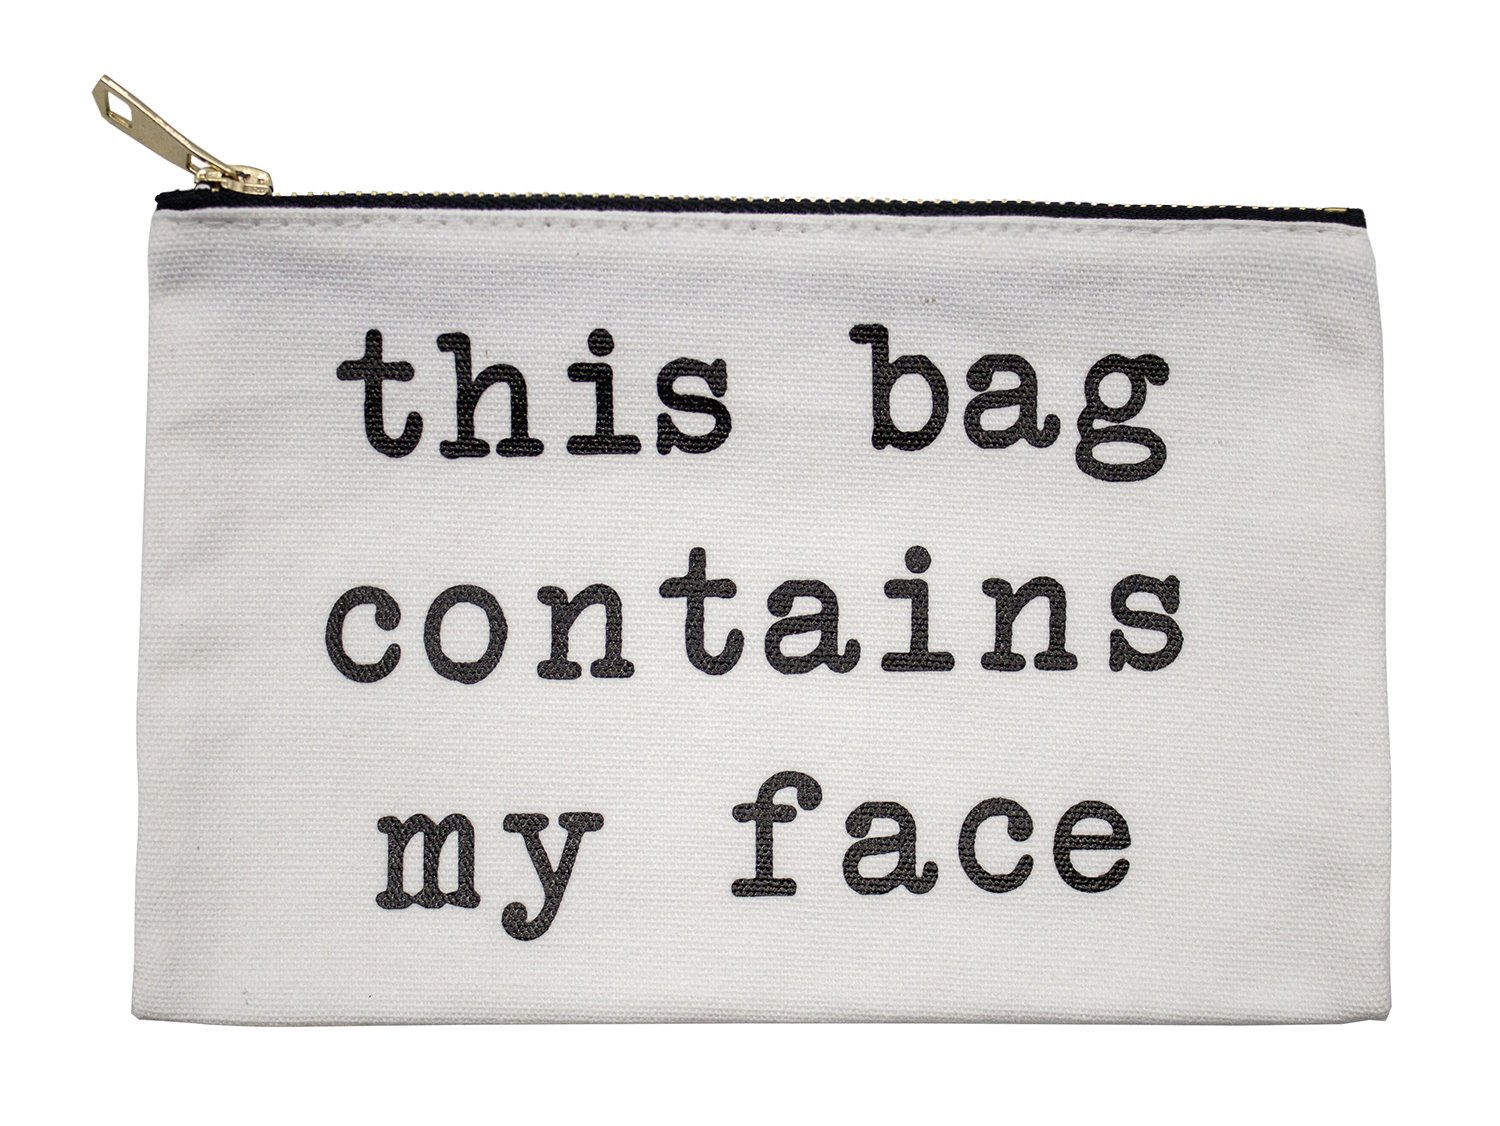 StylesILove Womens Girls 100% Cotton Canvas Stylish Print This Bag Contains My Face Travel Cosmetic Case Makeup Bag Black Multi-use Pouch with Bold Gold Zipper (My Face)